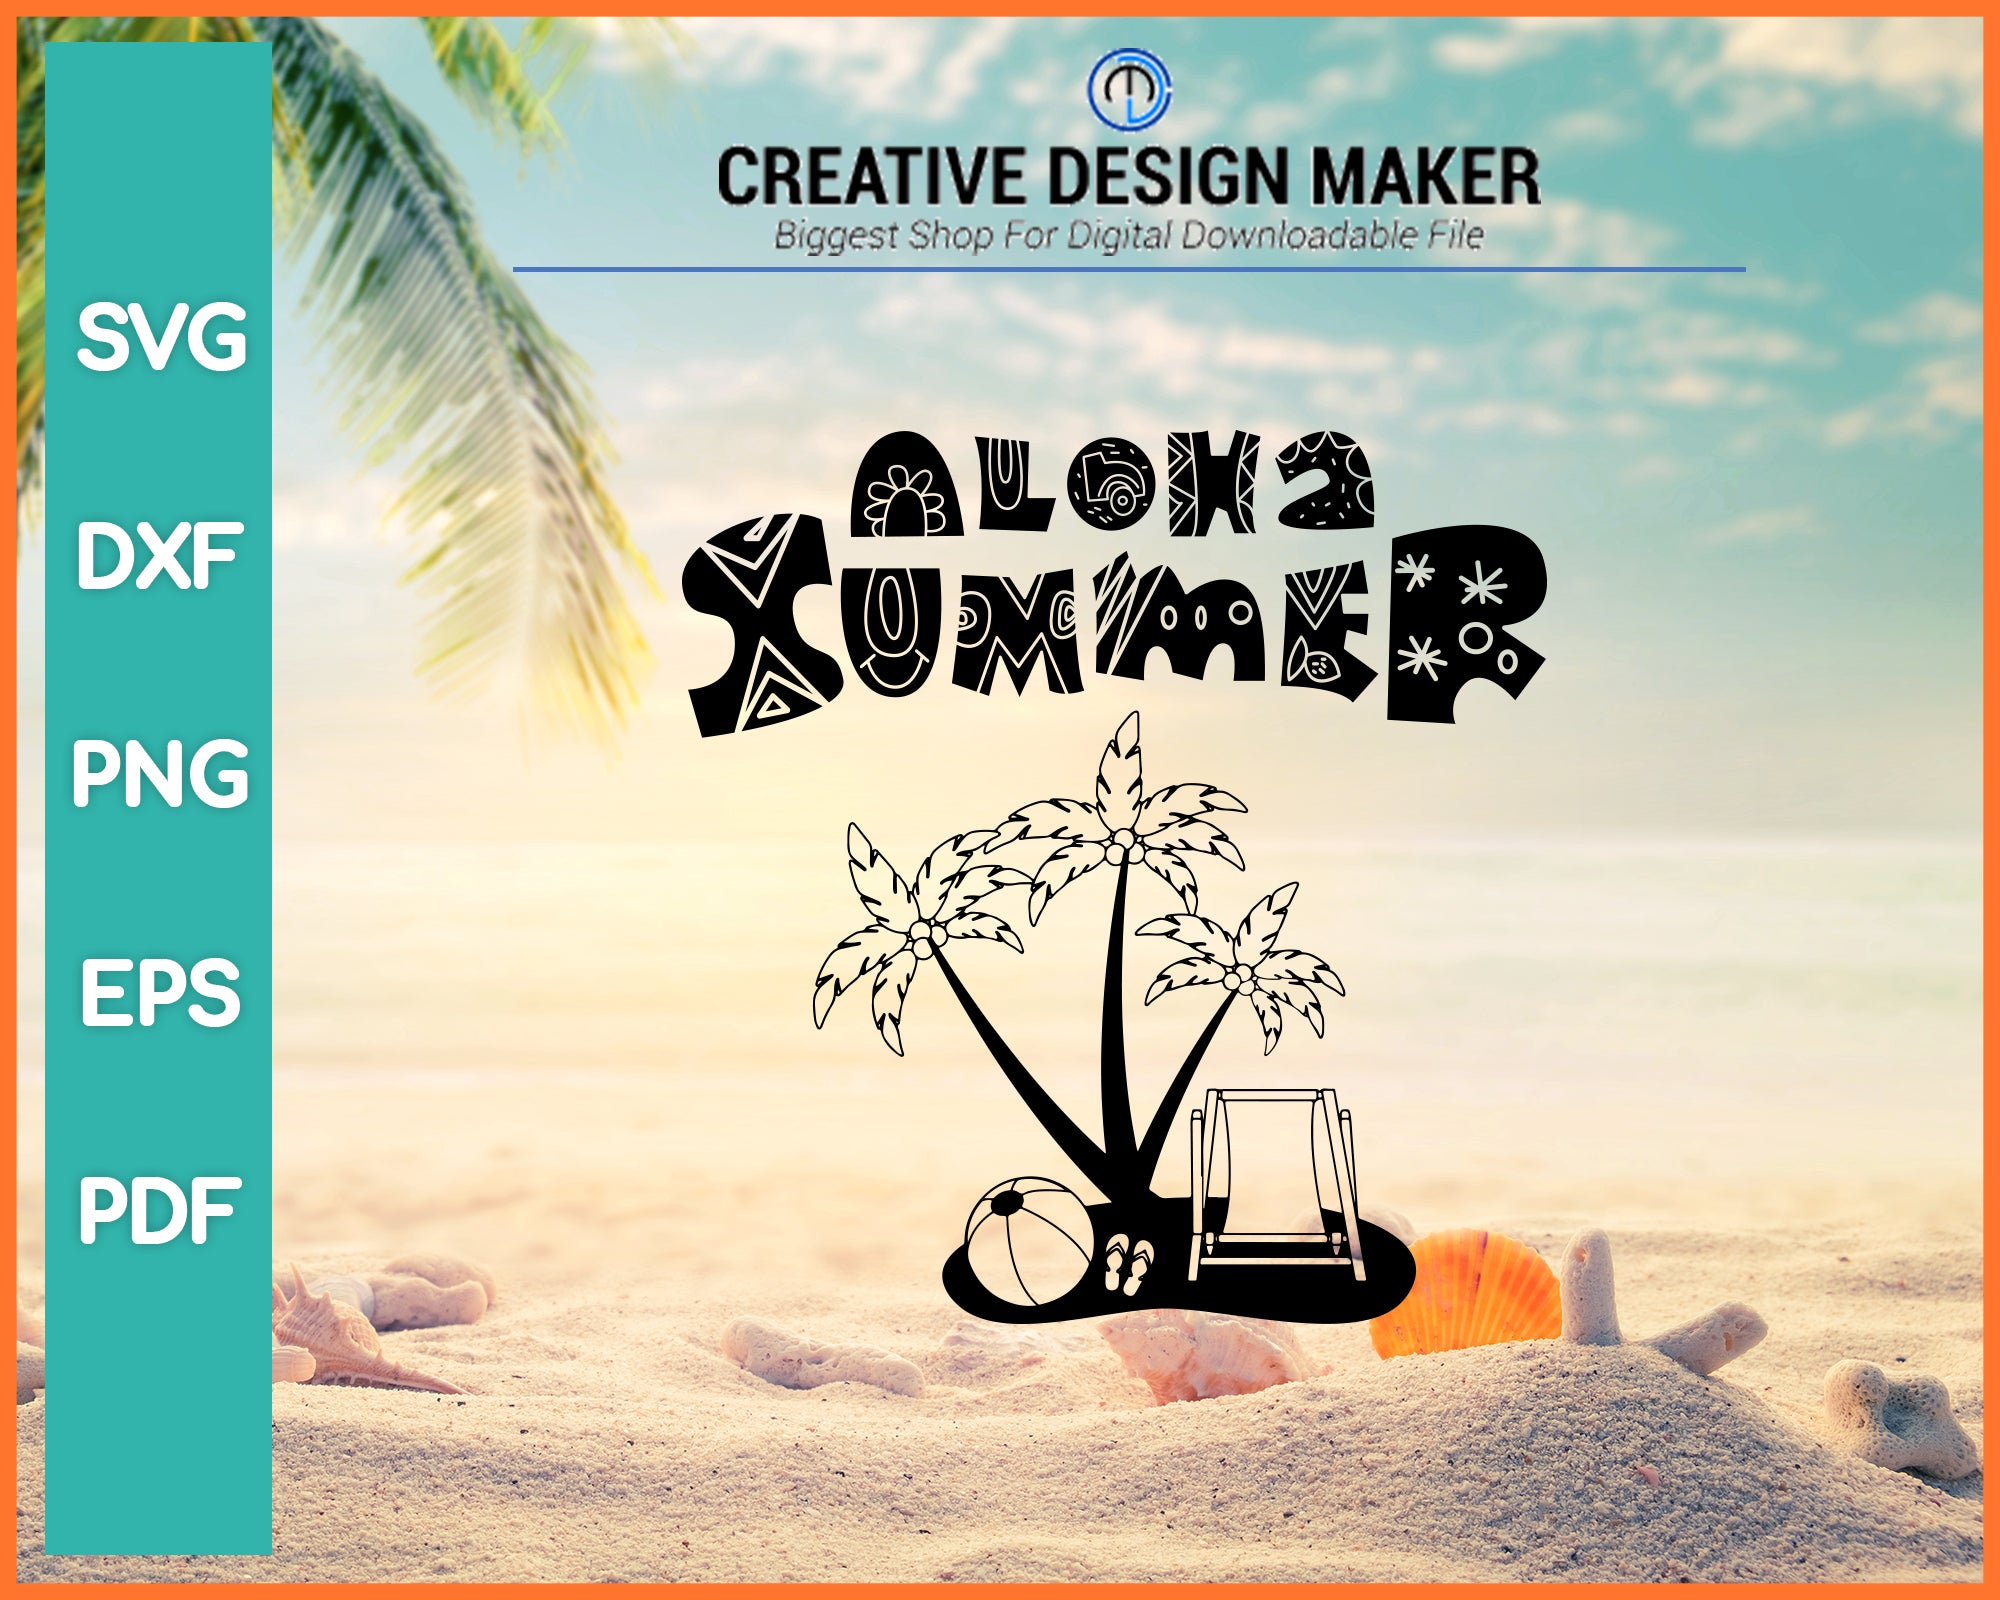 Aloha Summer Svg For Cricut Silhouette And Eps Png Printable Files Creativedesignmaker